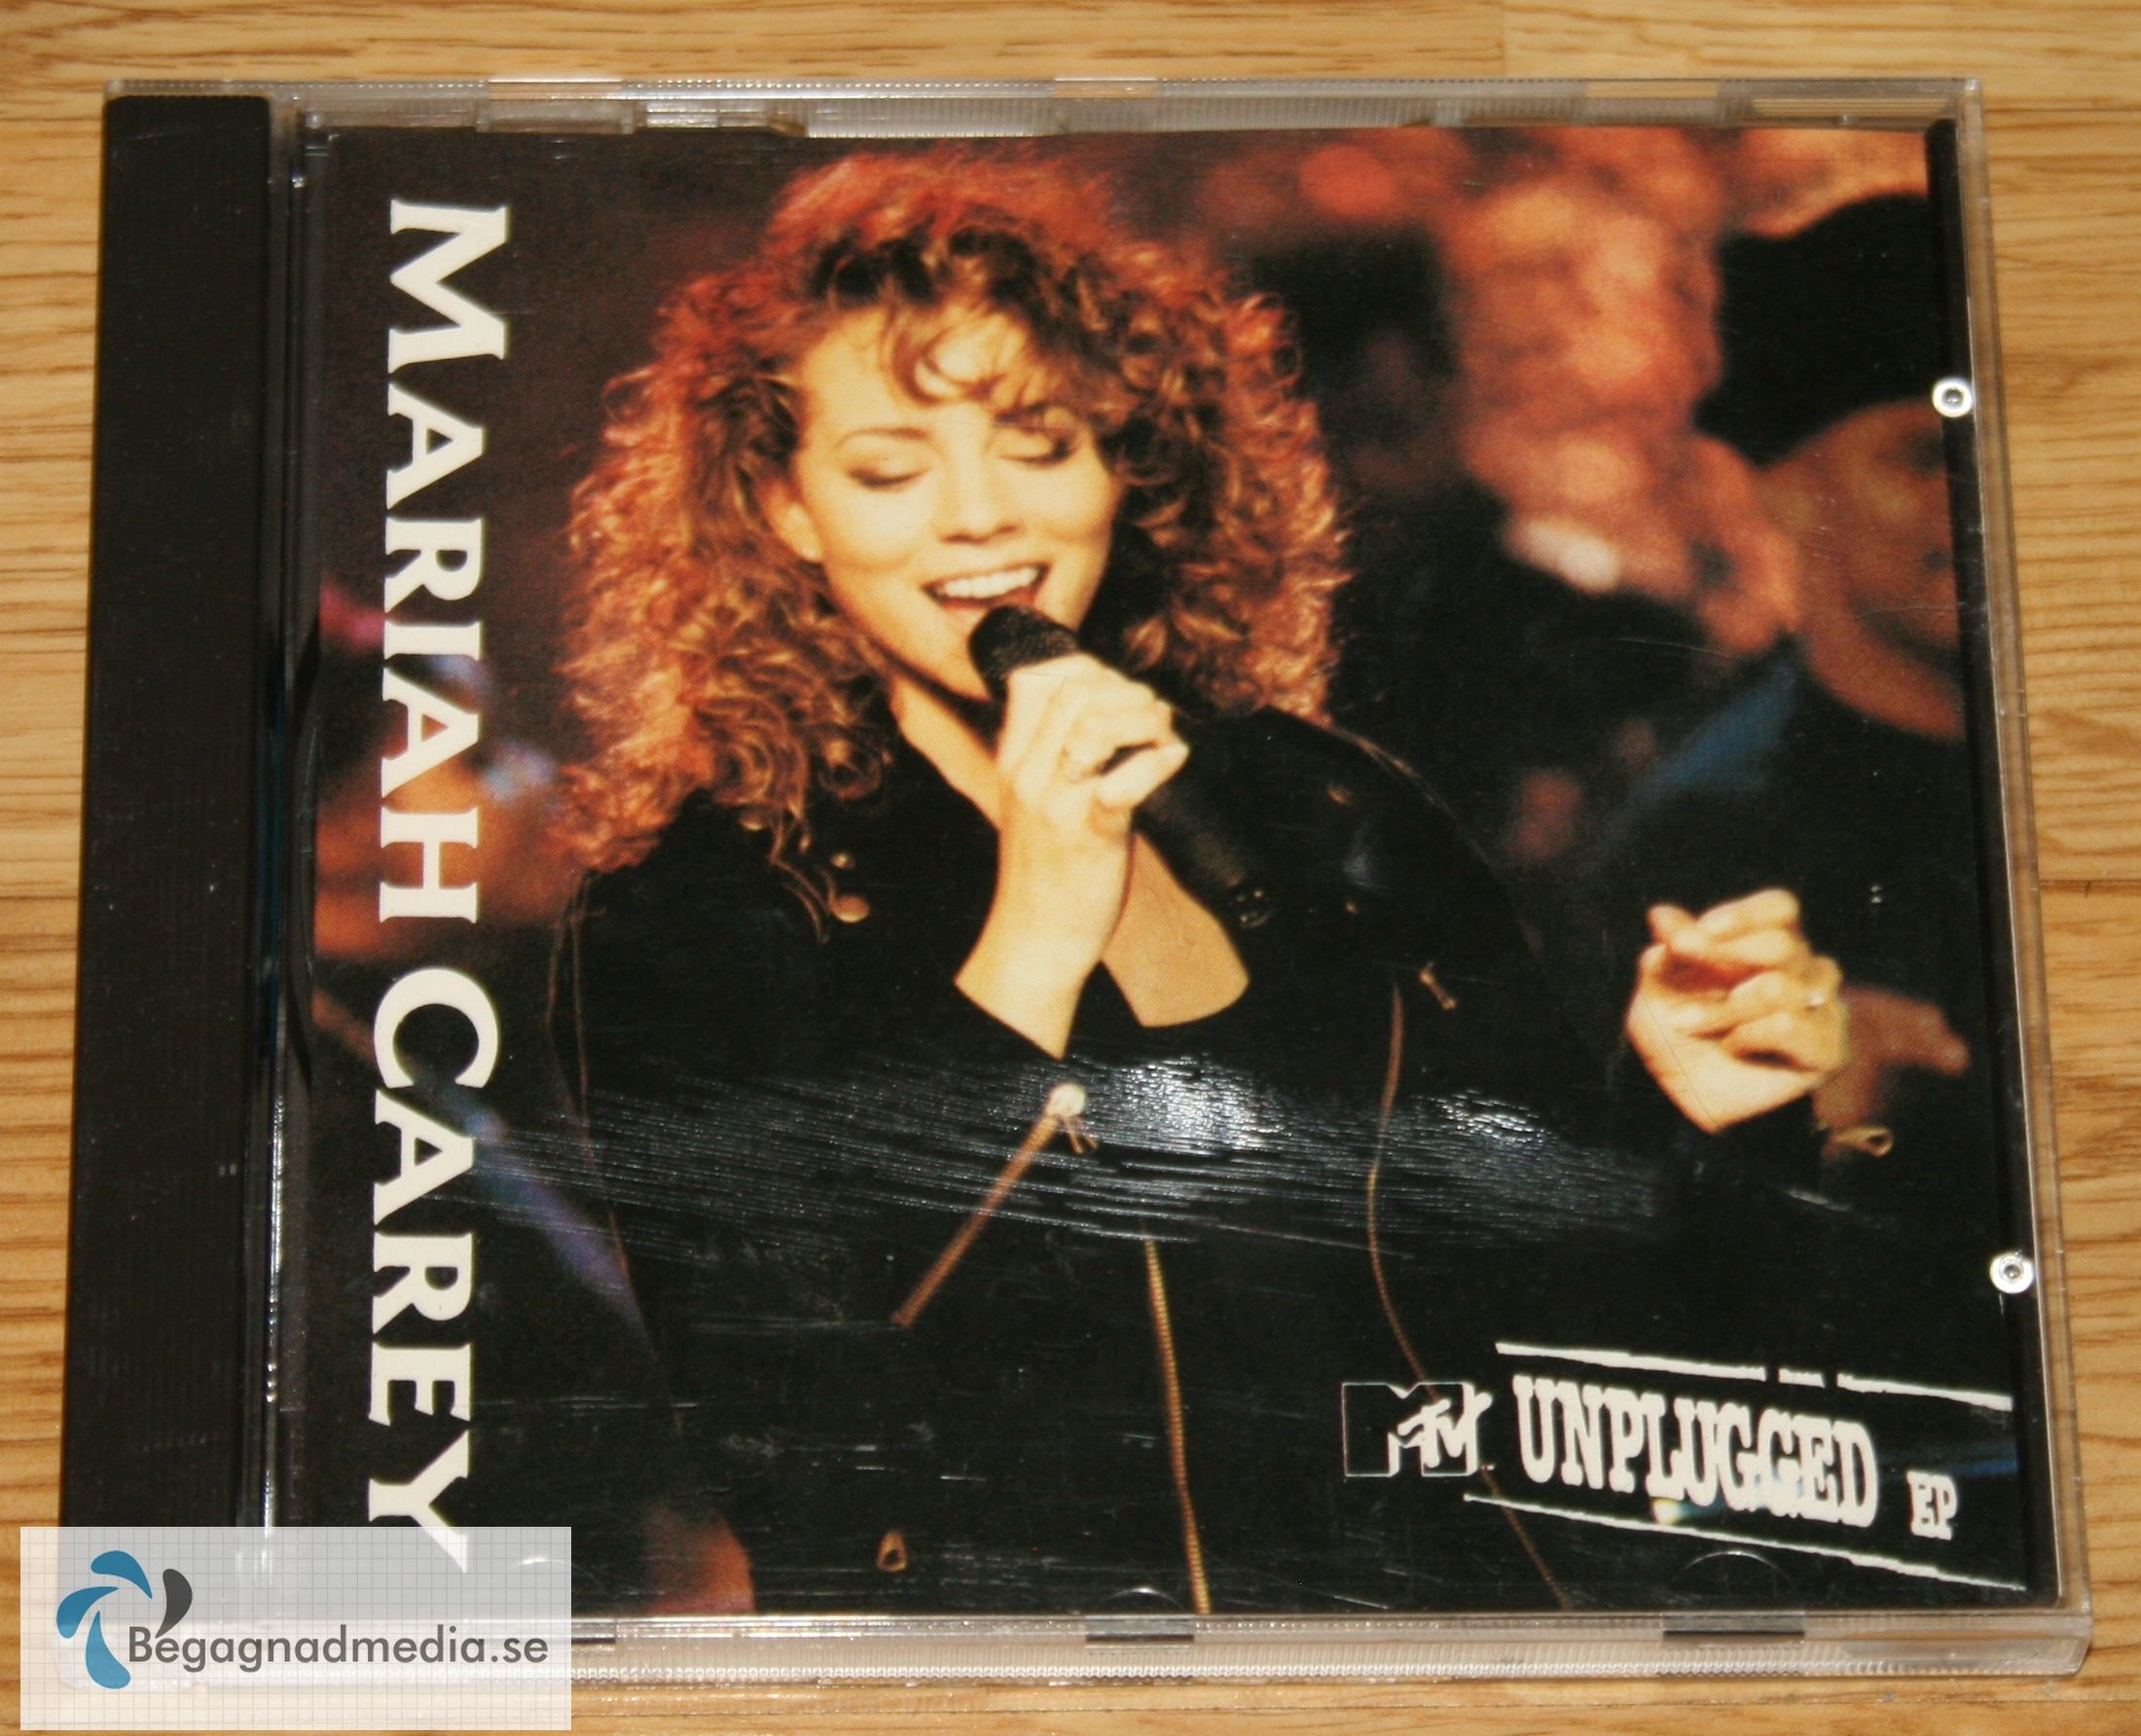 #Mariah#Carey#Unplugged#Cd